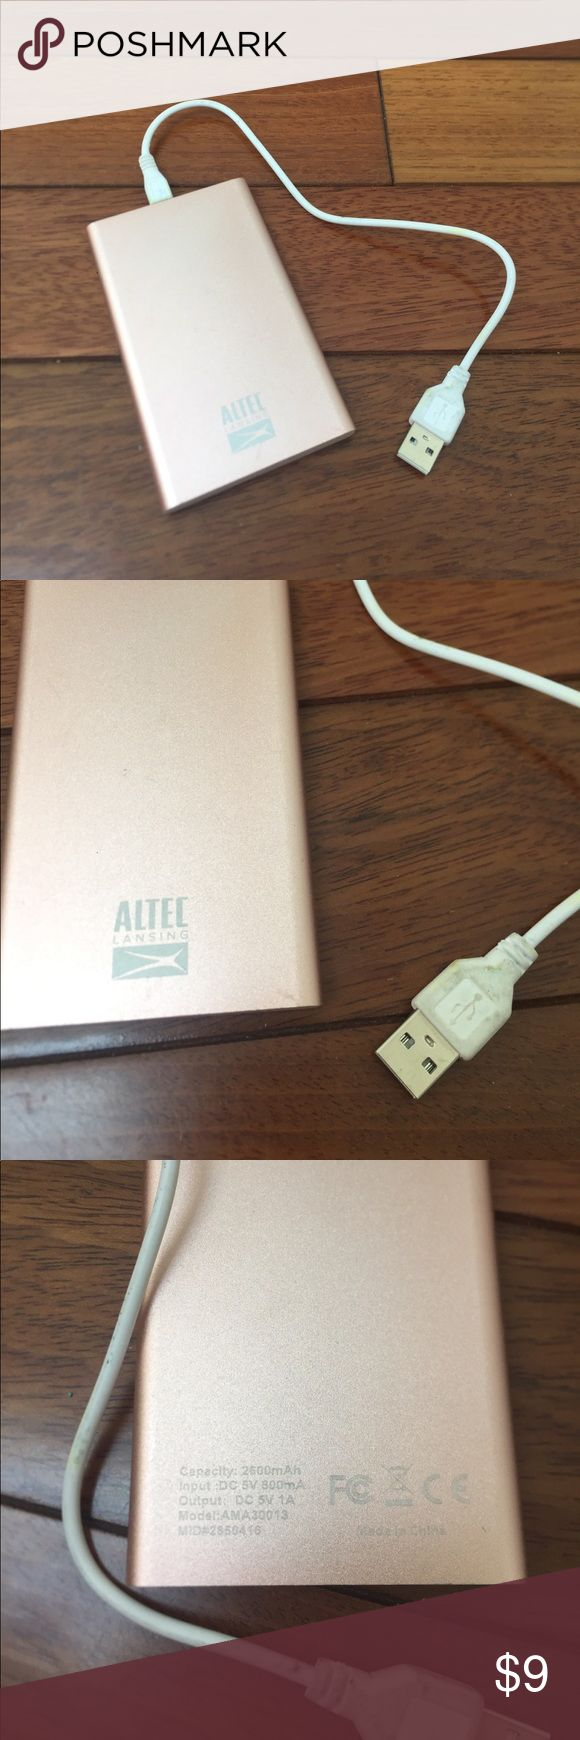 Altee Lansing Metallic Pink Battery Pack Altee Lansing Metallic Pink Battery Pack. Super thin. 2600 mah capacity. Wire a bit dirty. Very thin battery. Surface is slightly scratched up from being in a bag. I've been gifted a few batteries and am getting rid of this one. Altee Lansing Other